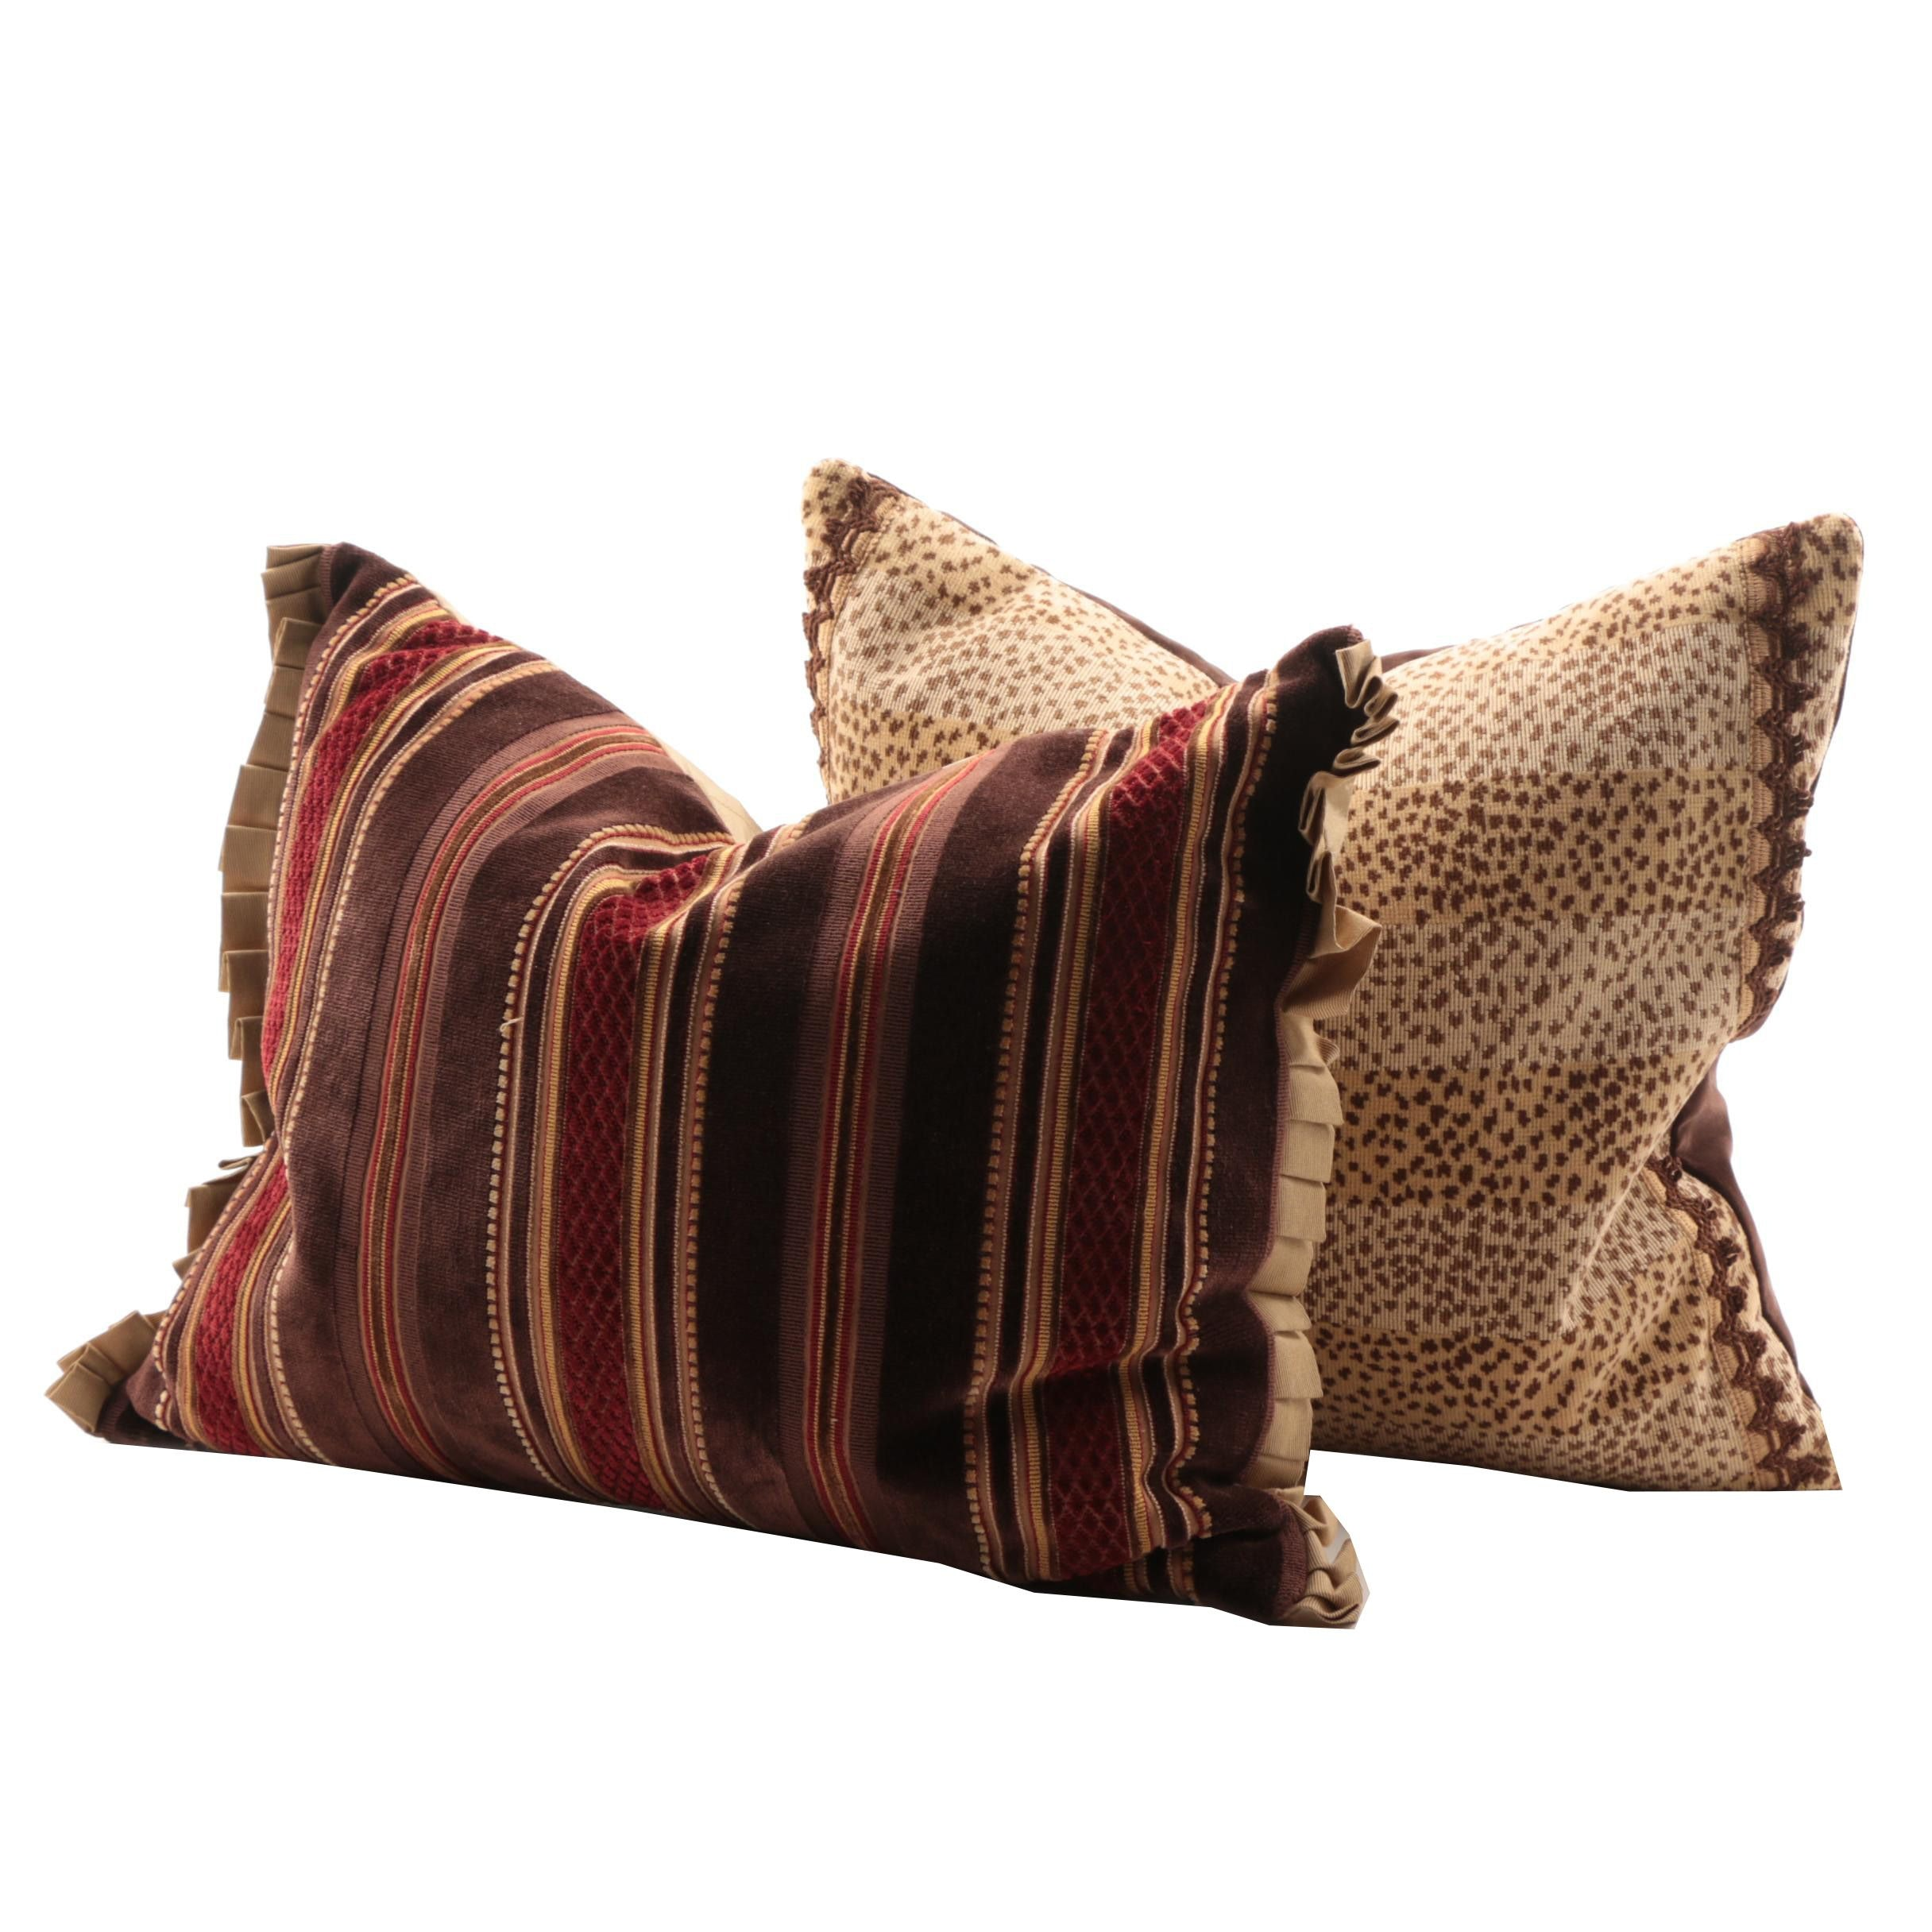 Decorative Feather Filled Pillows In Designer Fabrics